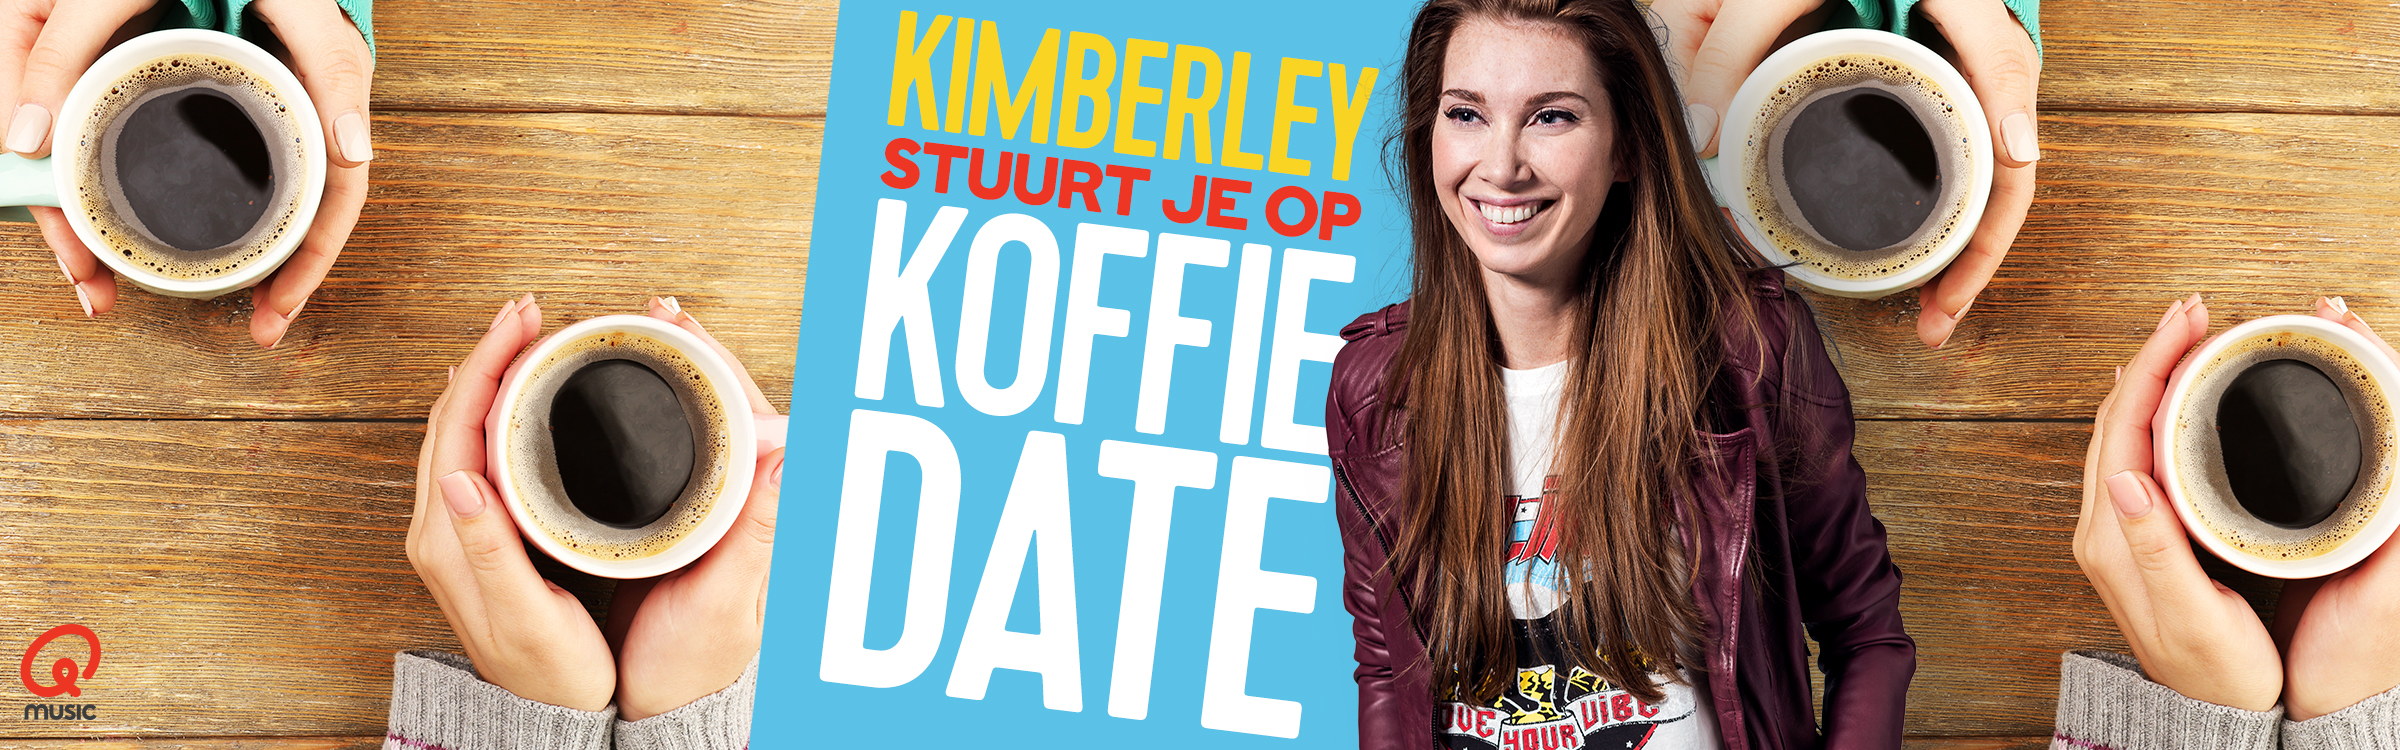 Qmusic actionheader datekimberly